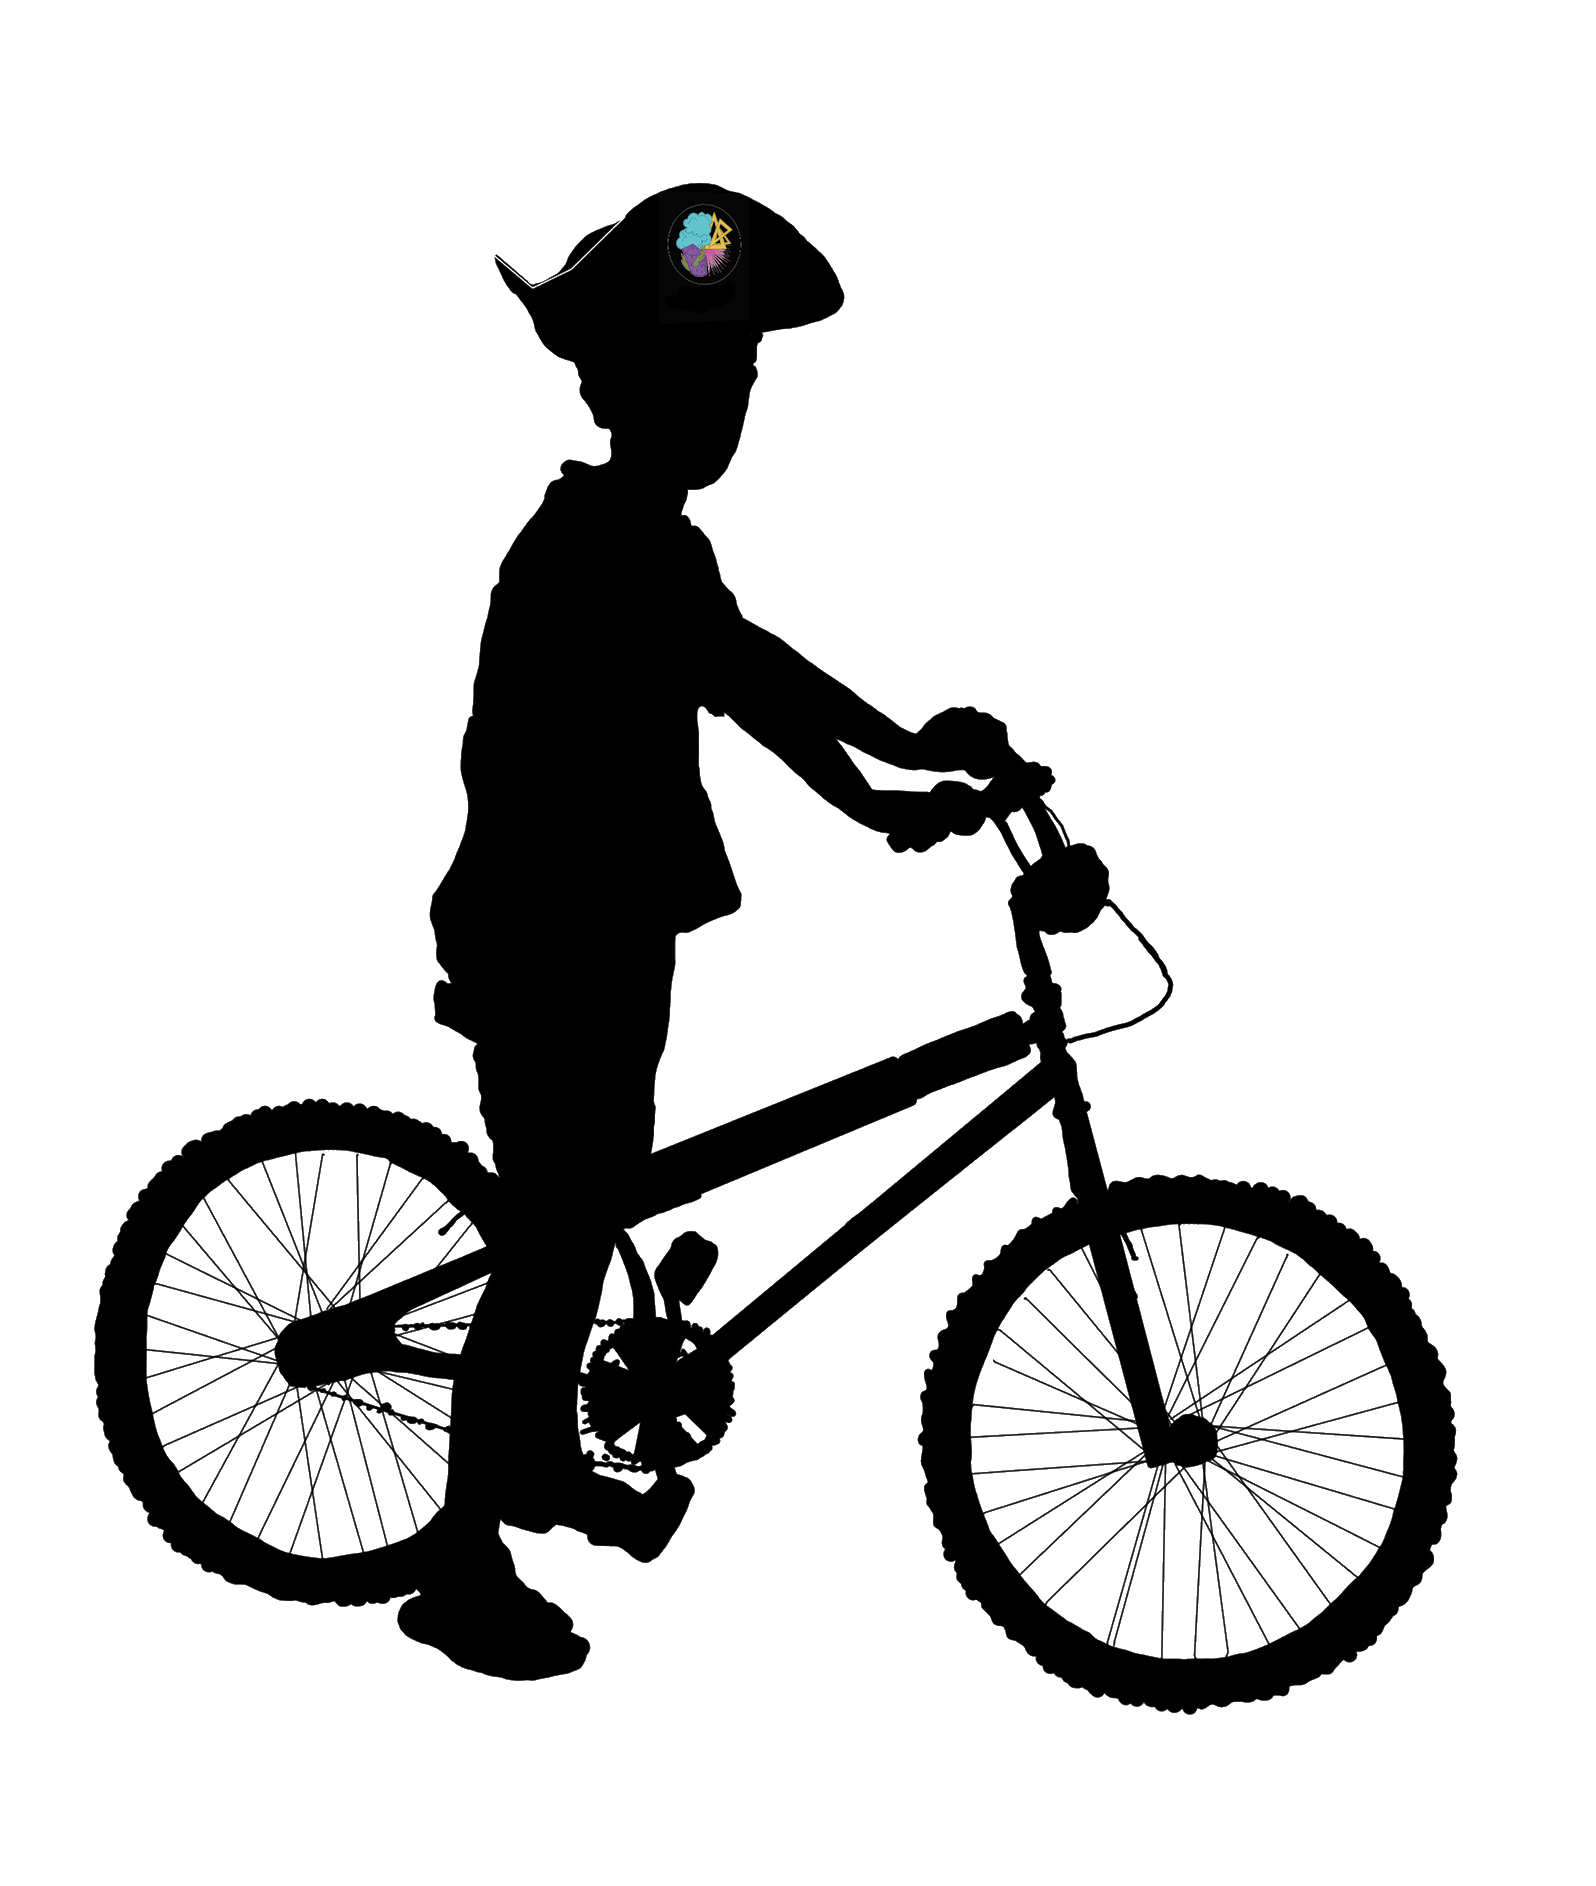 Kid on bike.jpg